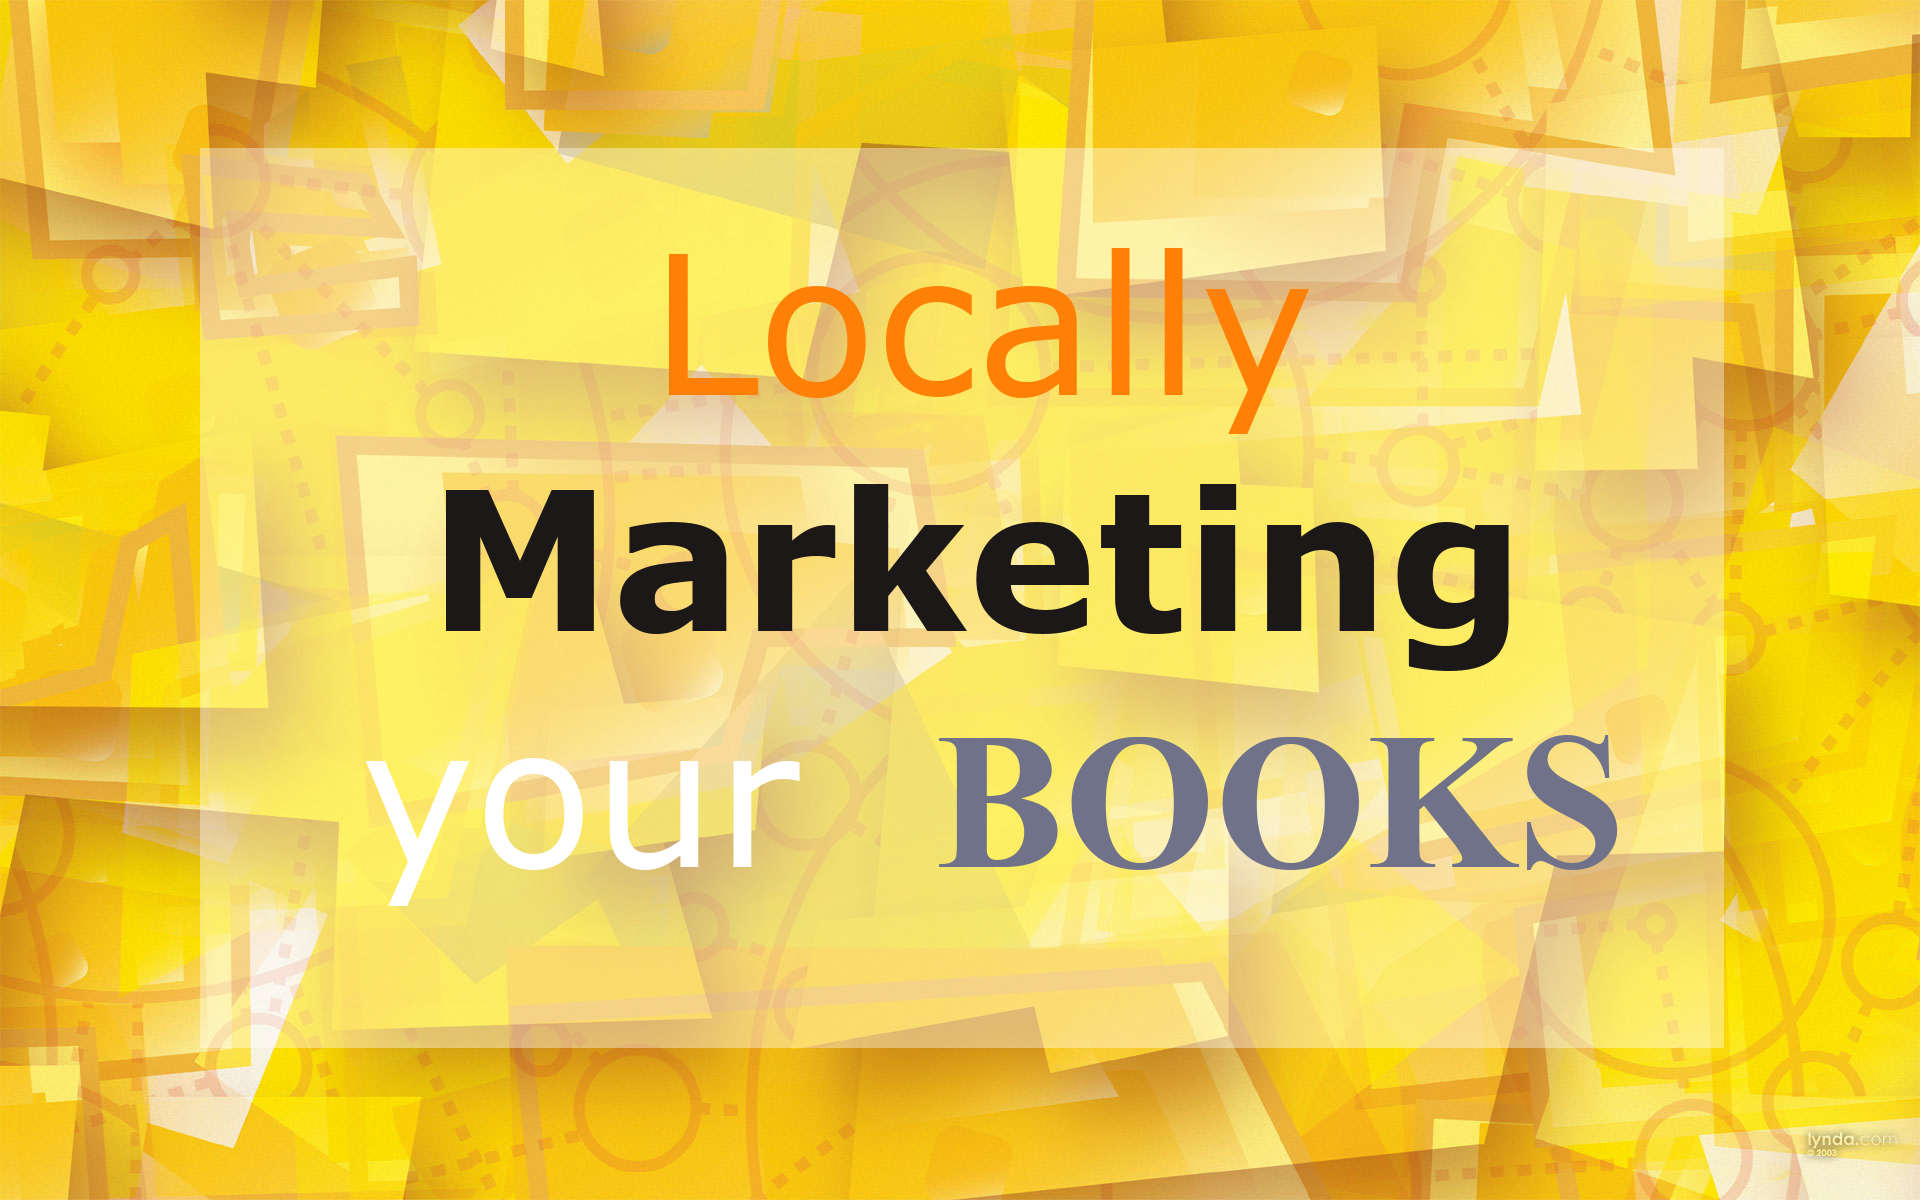 Locally Marketing Your Books